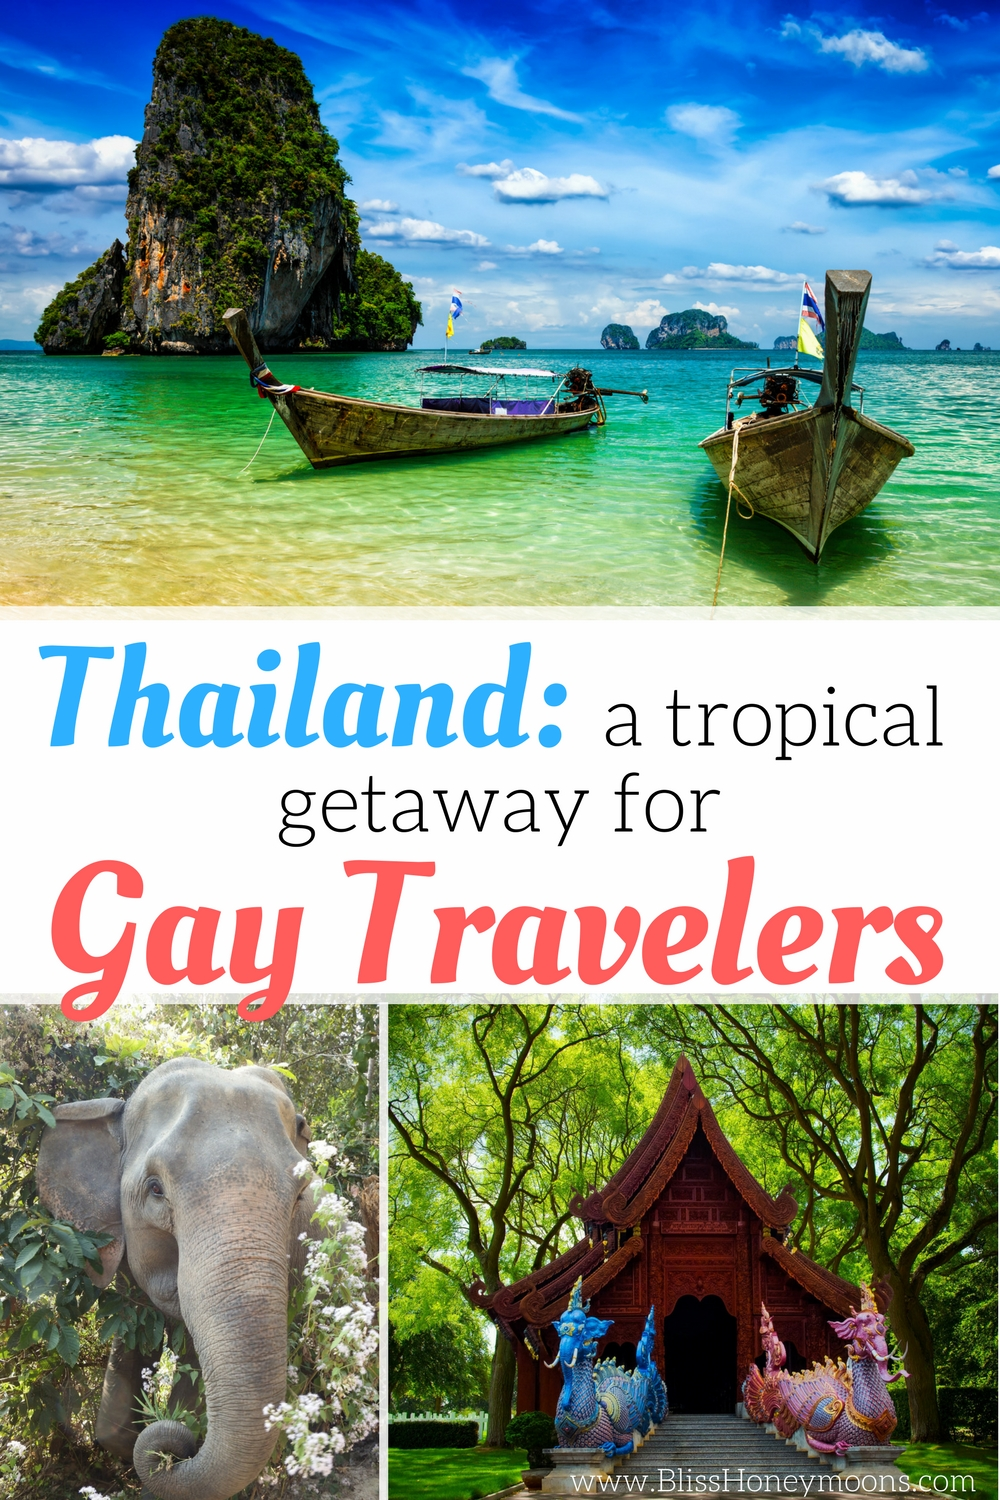 Thailand A Tropical Getaway For Gay Travelers